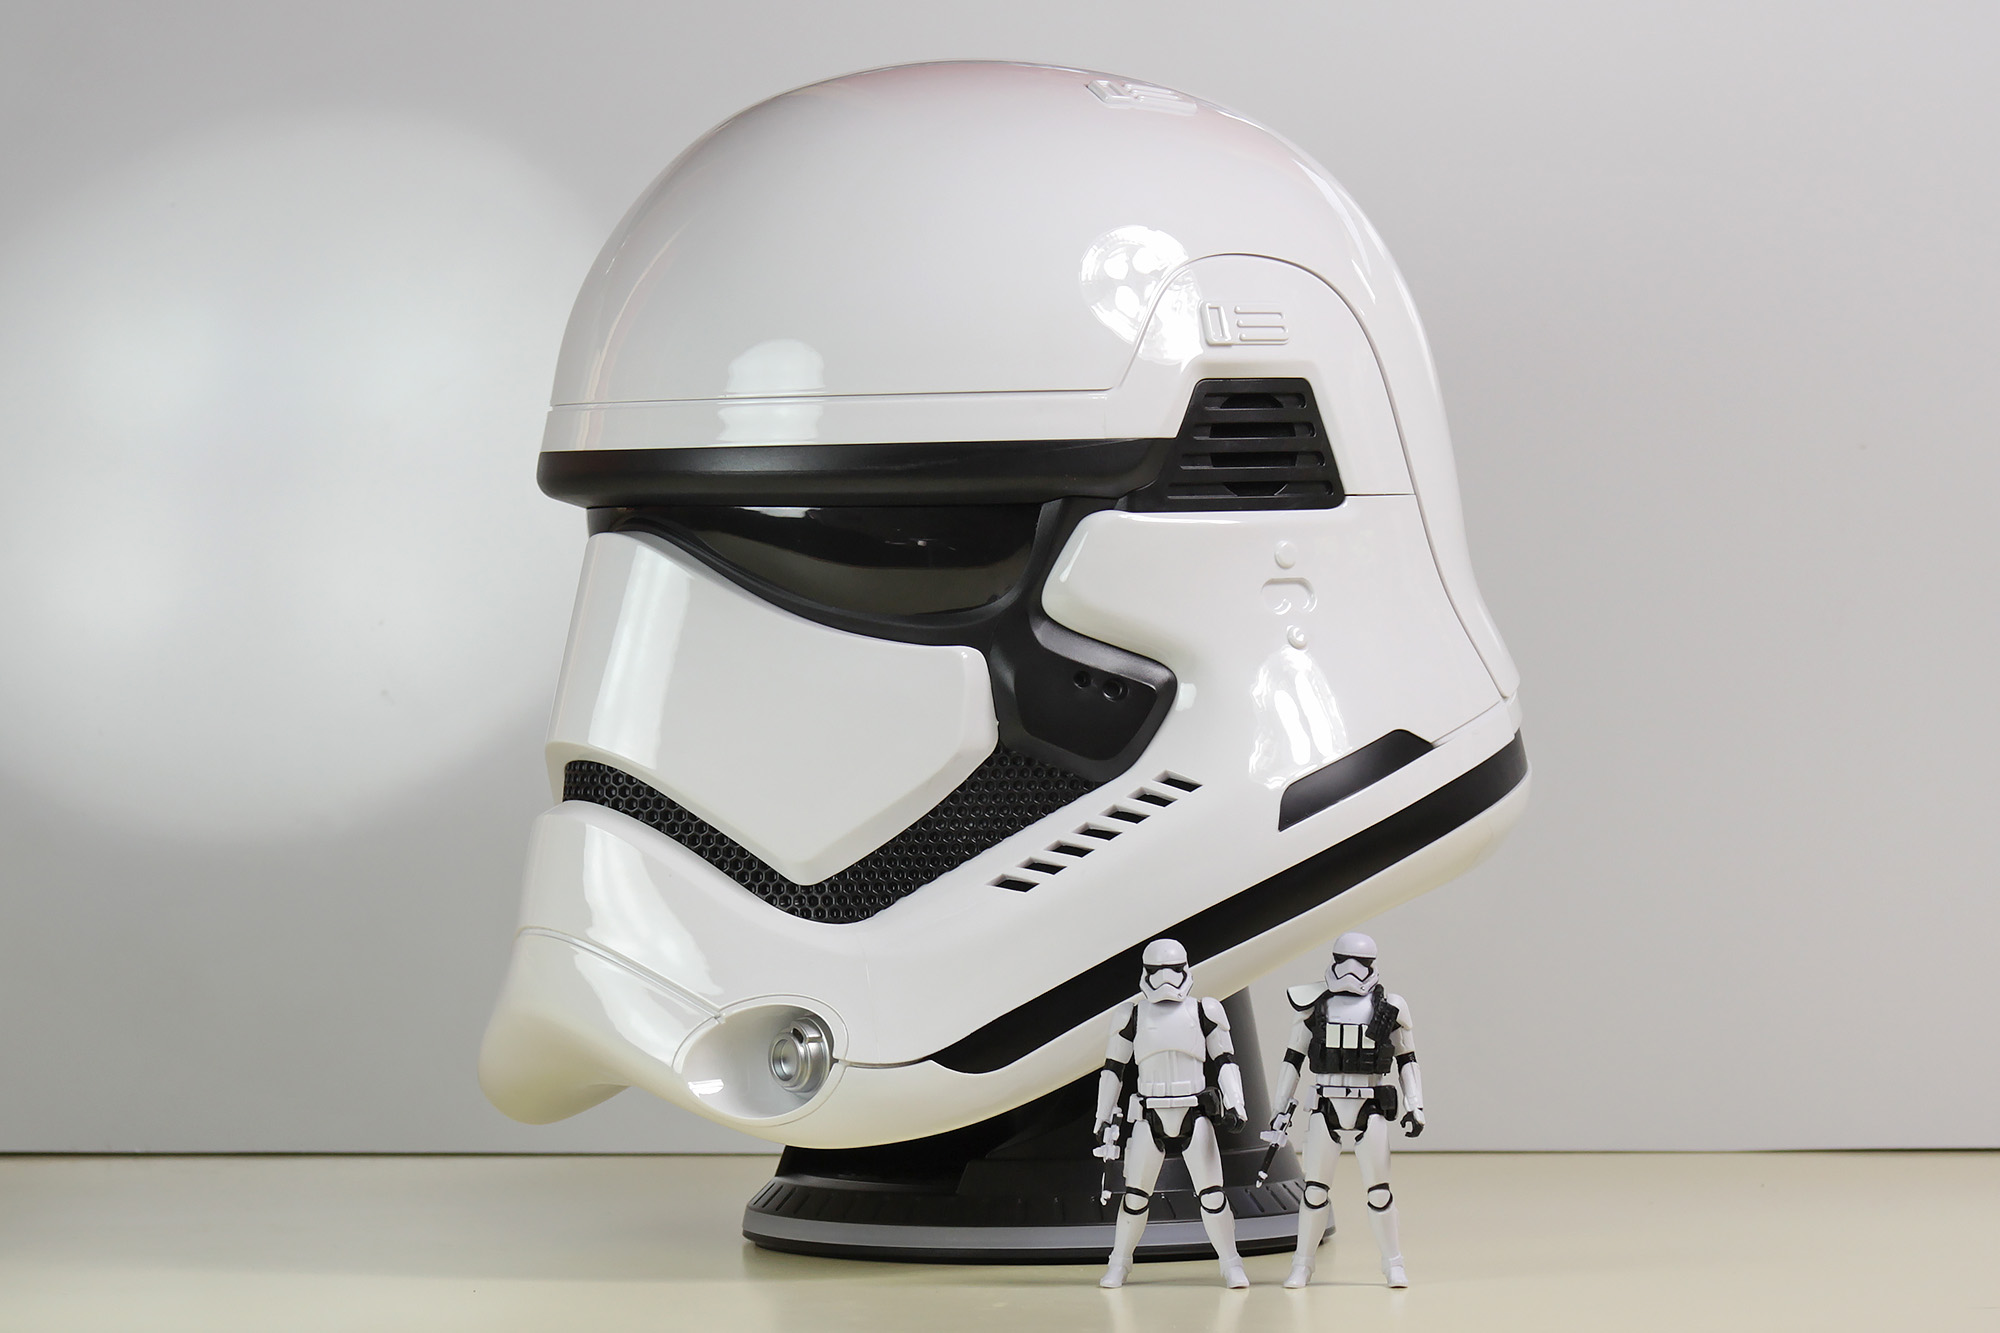 The stormtrooper helmet bluetooth speaker will be available from JB Hi-Fi EB Games Toyco and Mighty Ape ($699.99 RRP). Stormtrooper fans in particular ... & Review - 1:1 Stormtrooper Helmet Bluetooth Speaker - SWNZ Star Wars ...